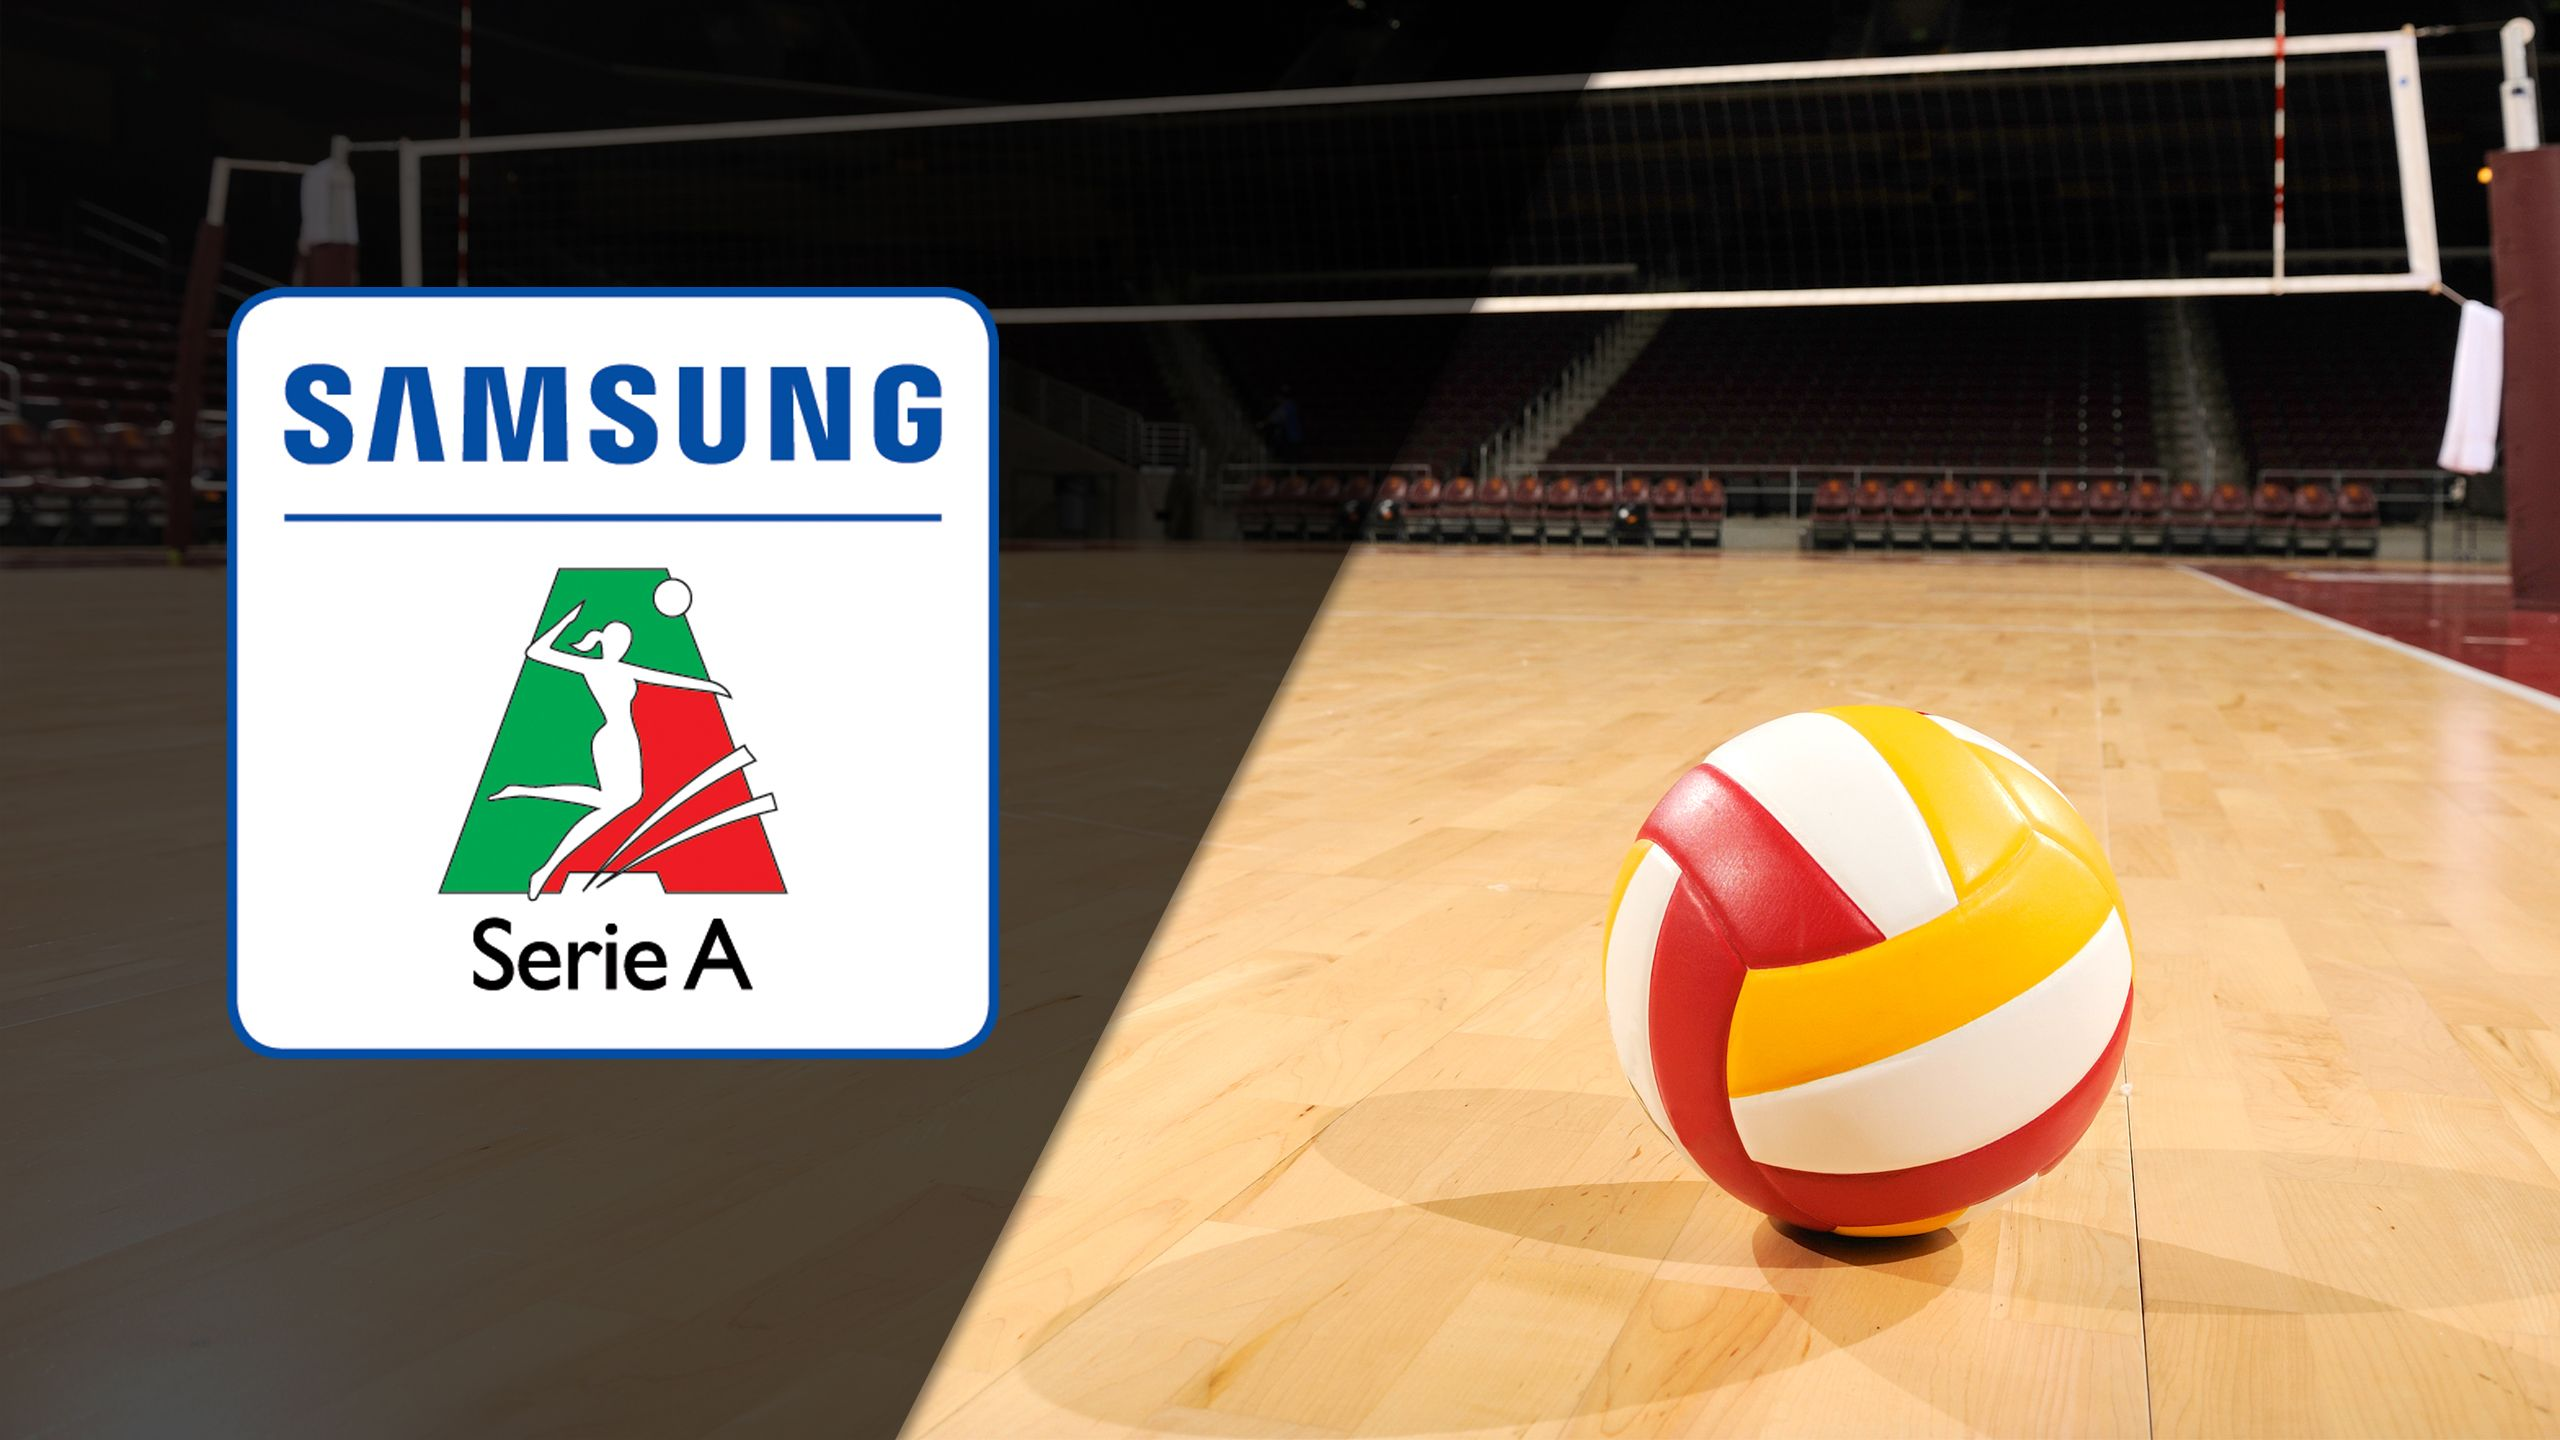 Savino del Bene Scandicci vs. Il Bisonte Firenze (Italian Serie A Women's Volleyball)